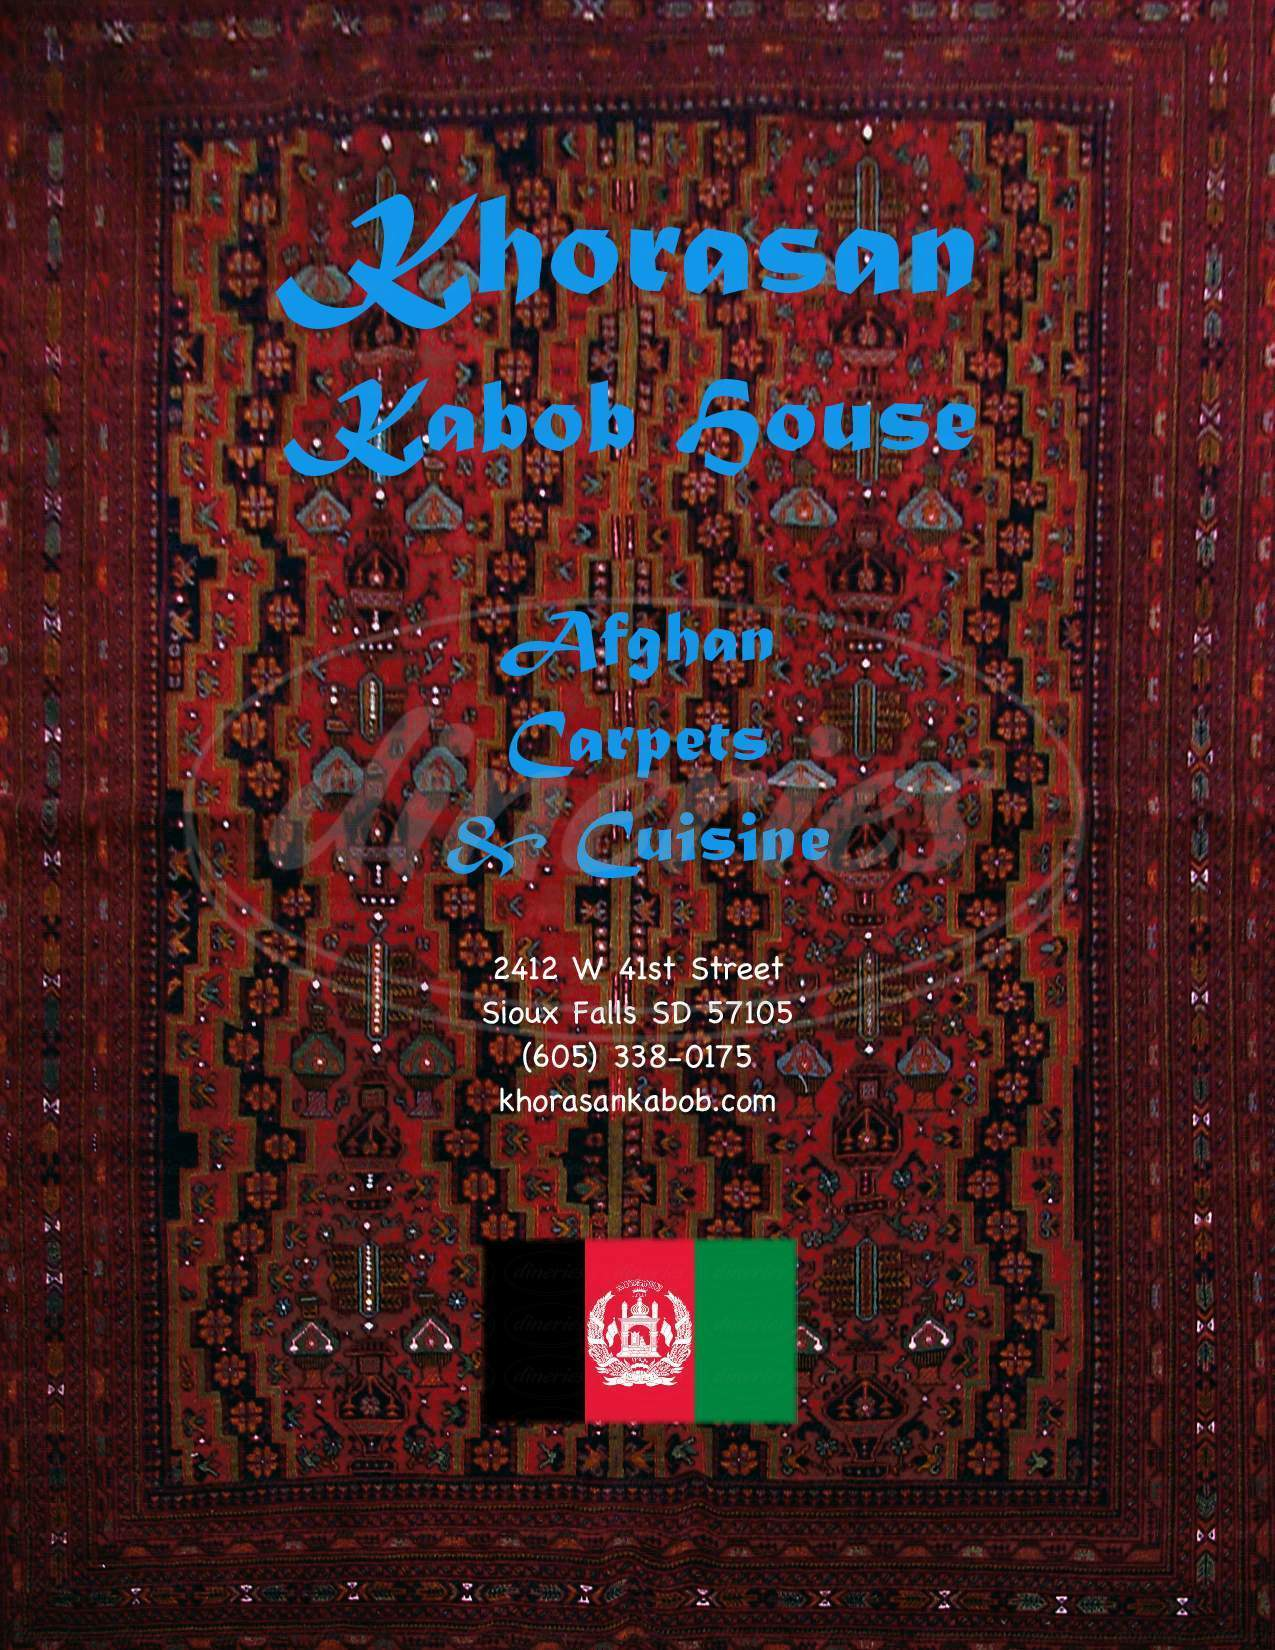 menu for Khorasan Kebab House